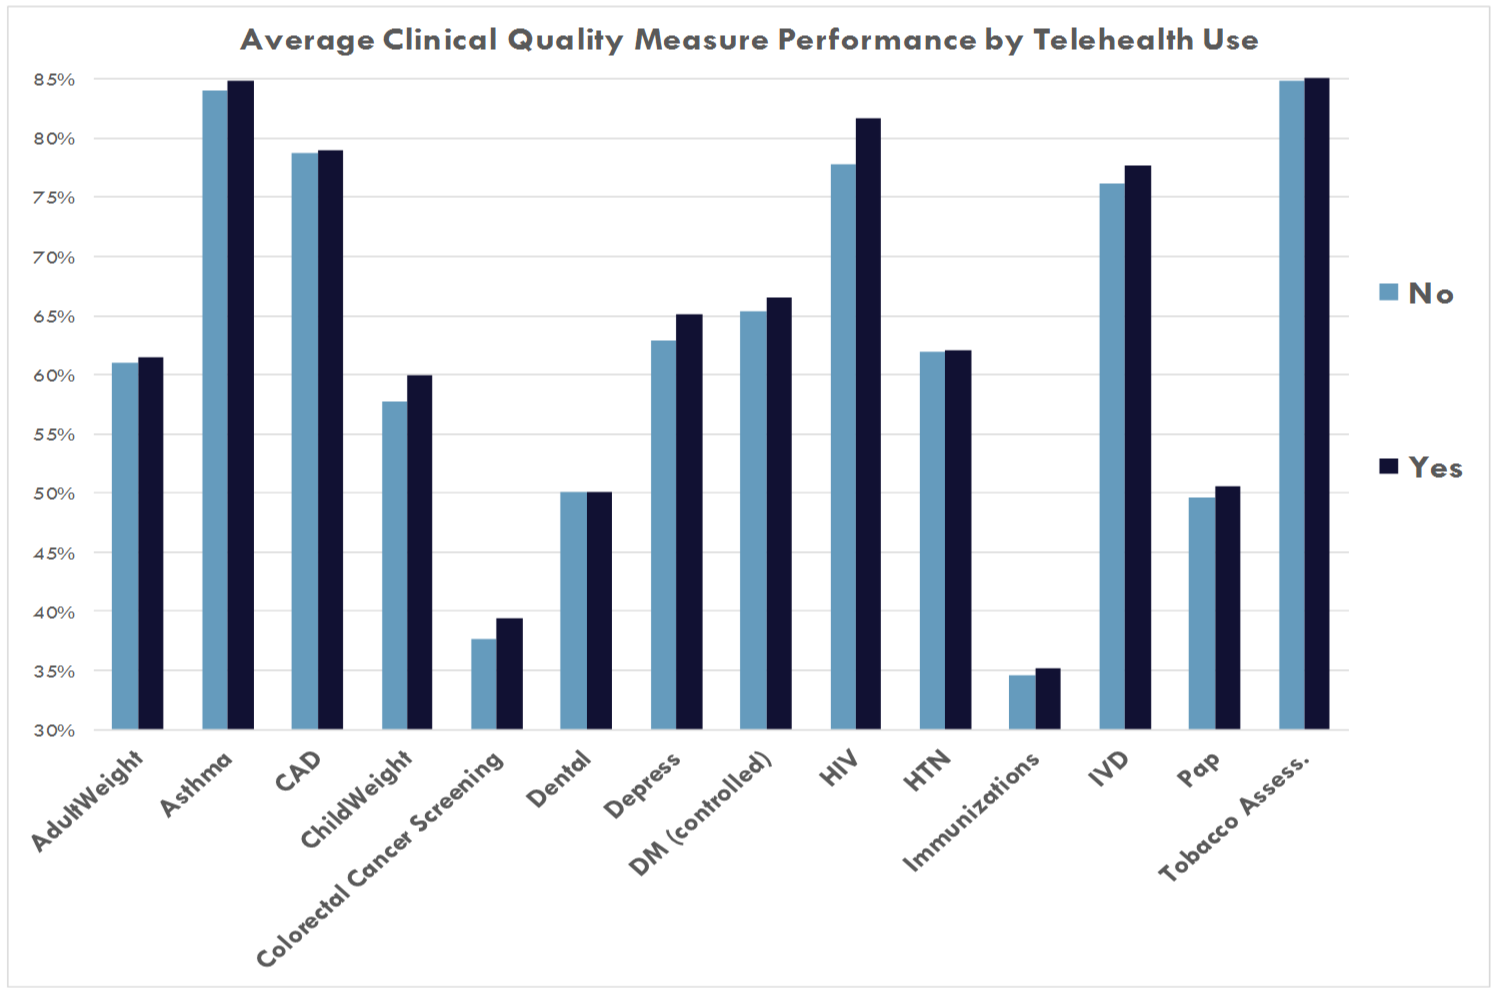 Side by side comparison of performance among health centers who report using telehealth and those who do not.